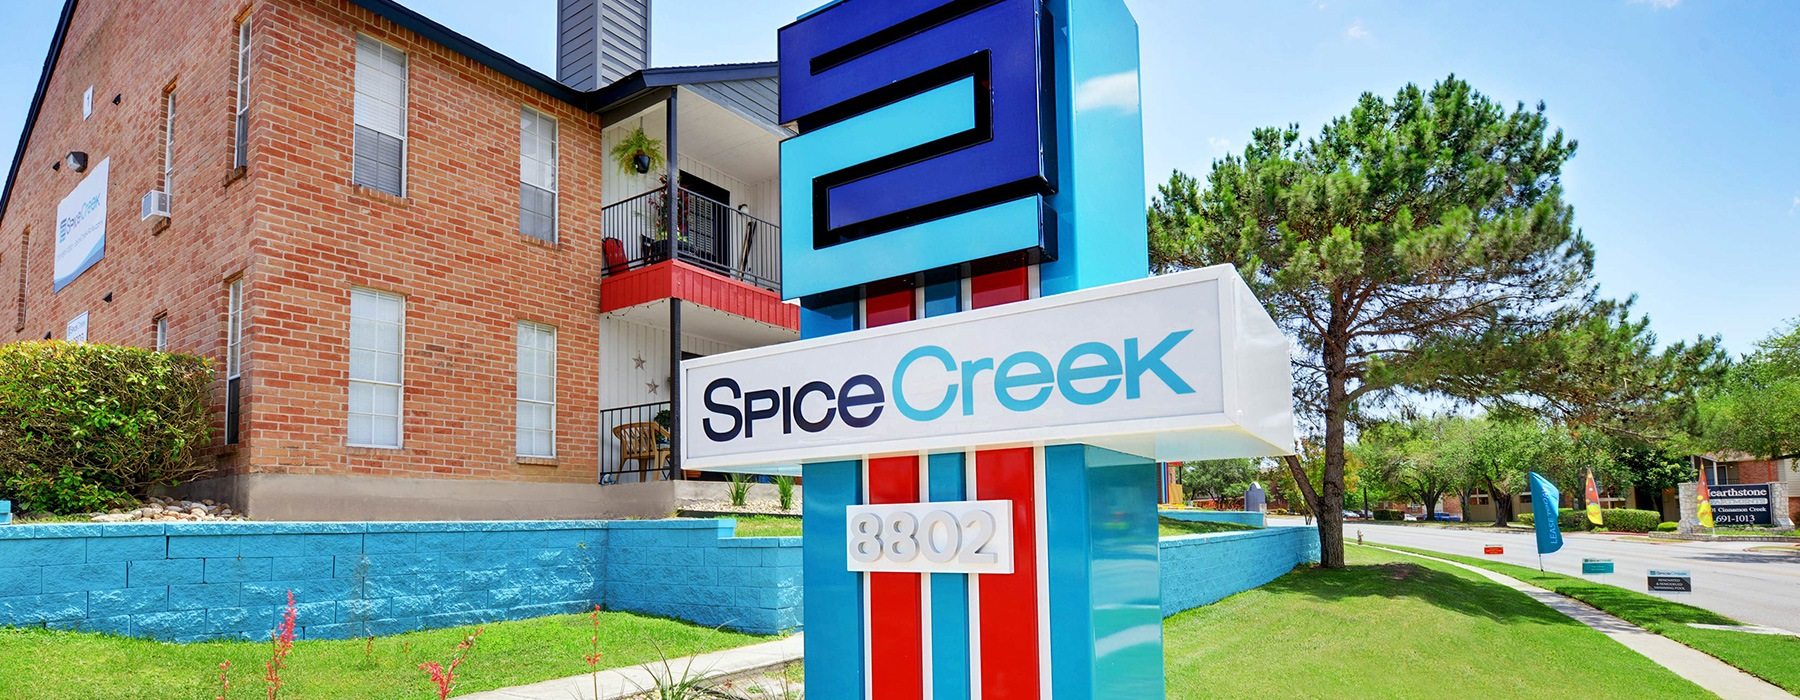 entrance to Spice Creek showing colorful sign and green landscaping